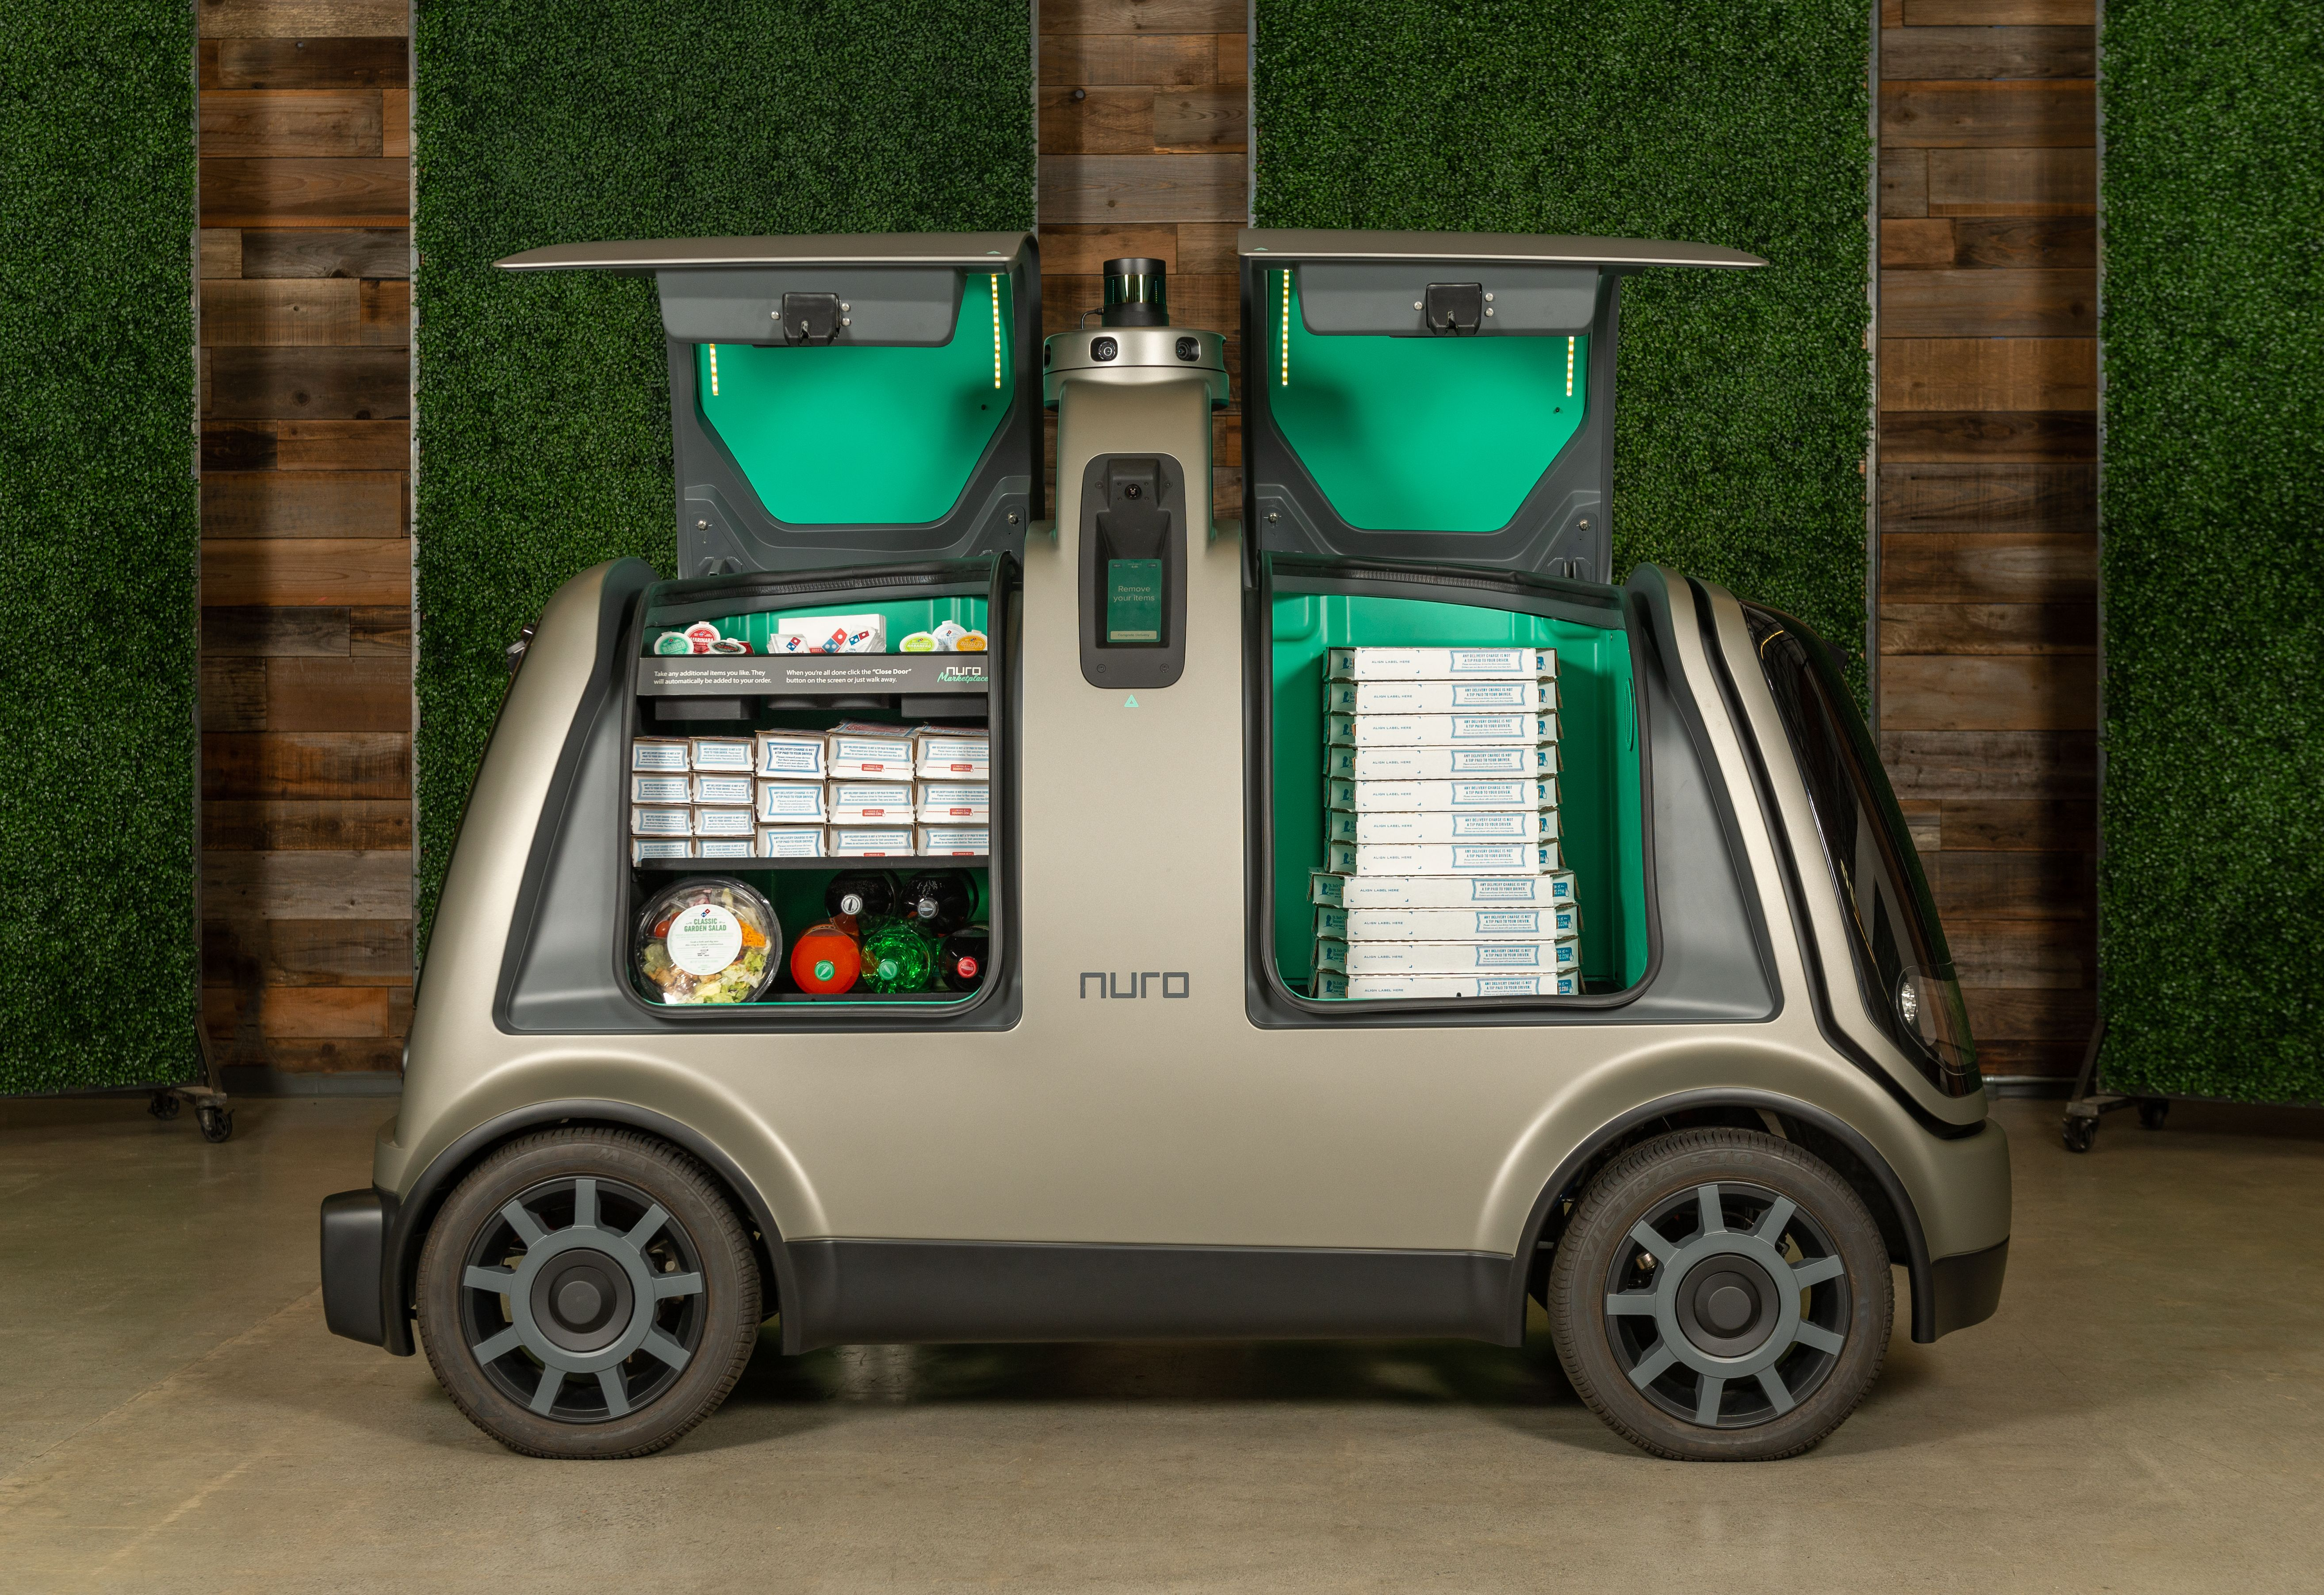 Domino's Pizza teams with Nuro to test automated delivery in Houston